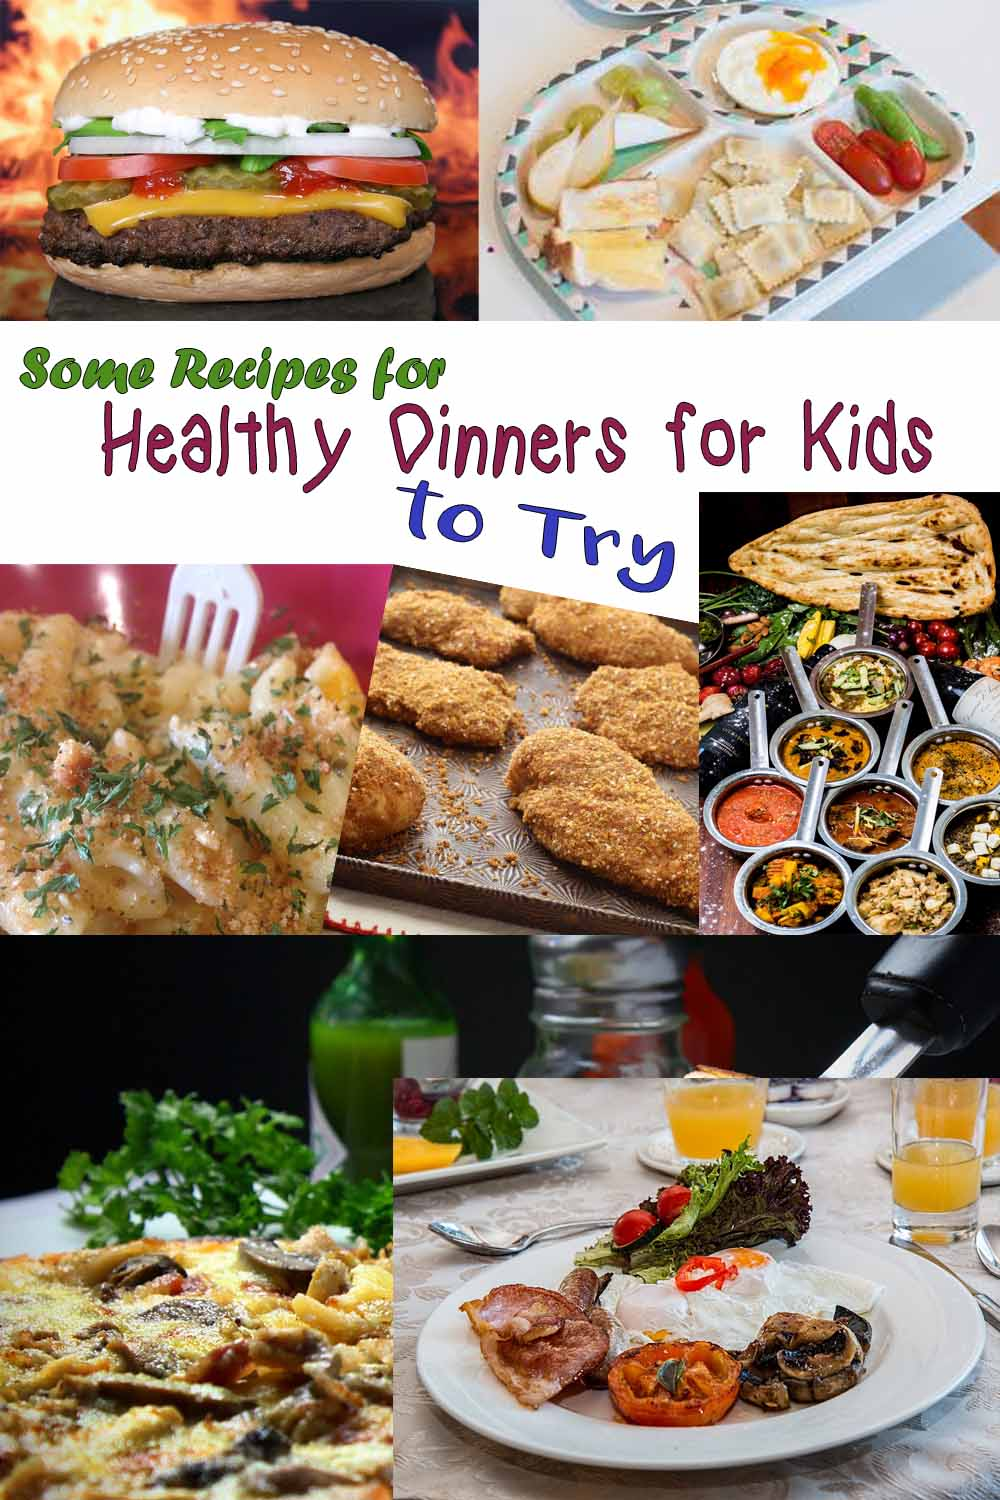 Some Recipes for Healthy Dinners for Kids to Try